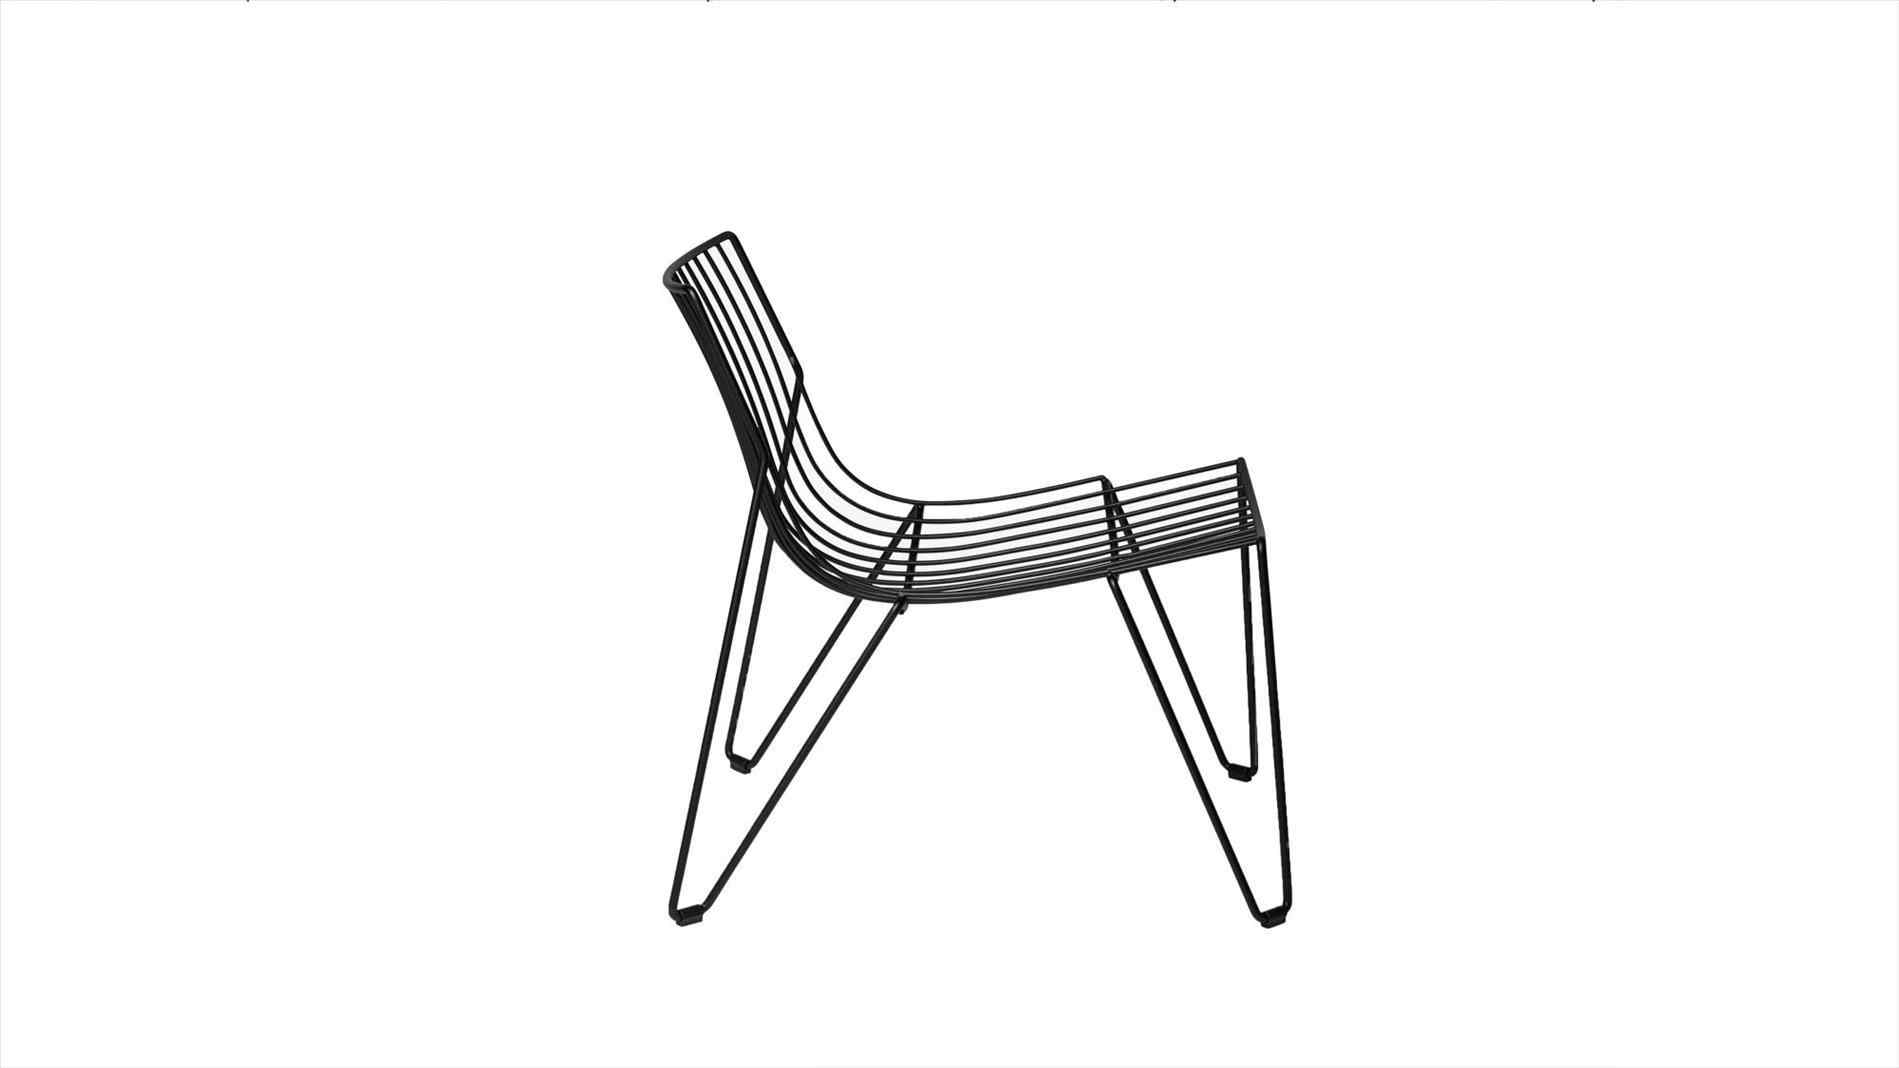 drawing chair chair drawing by midiman on deviantart chair drawing